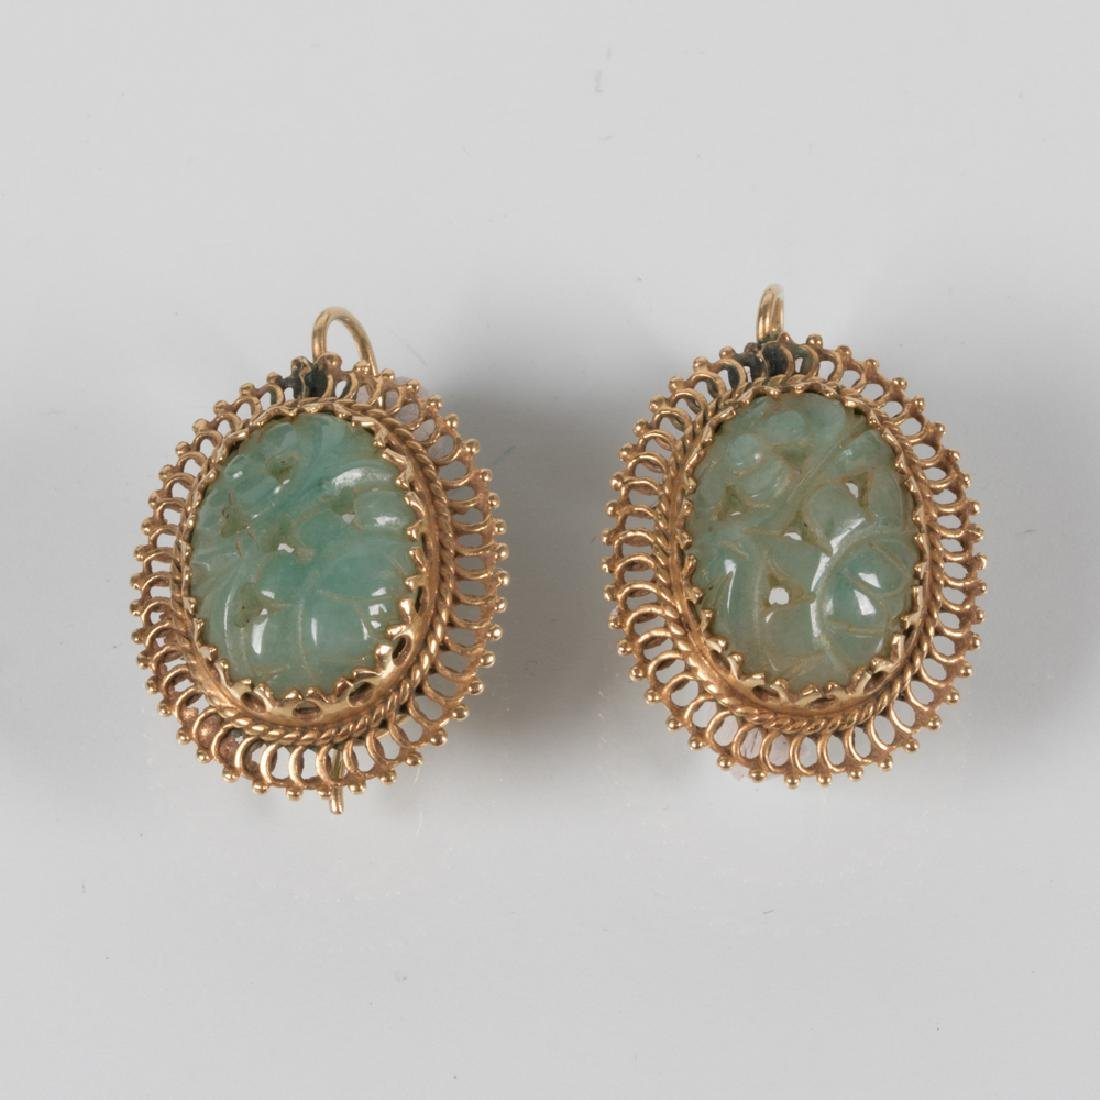 A Pair of 14kt. Yellow Gold and Pierced Carved Green